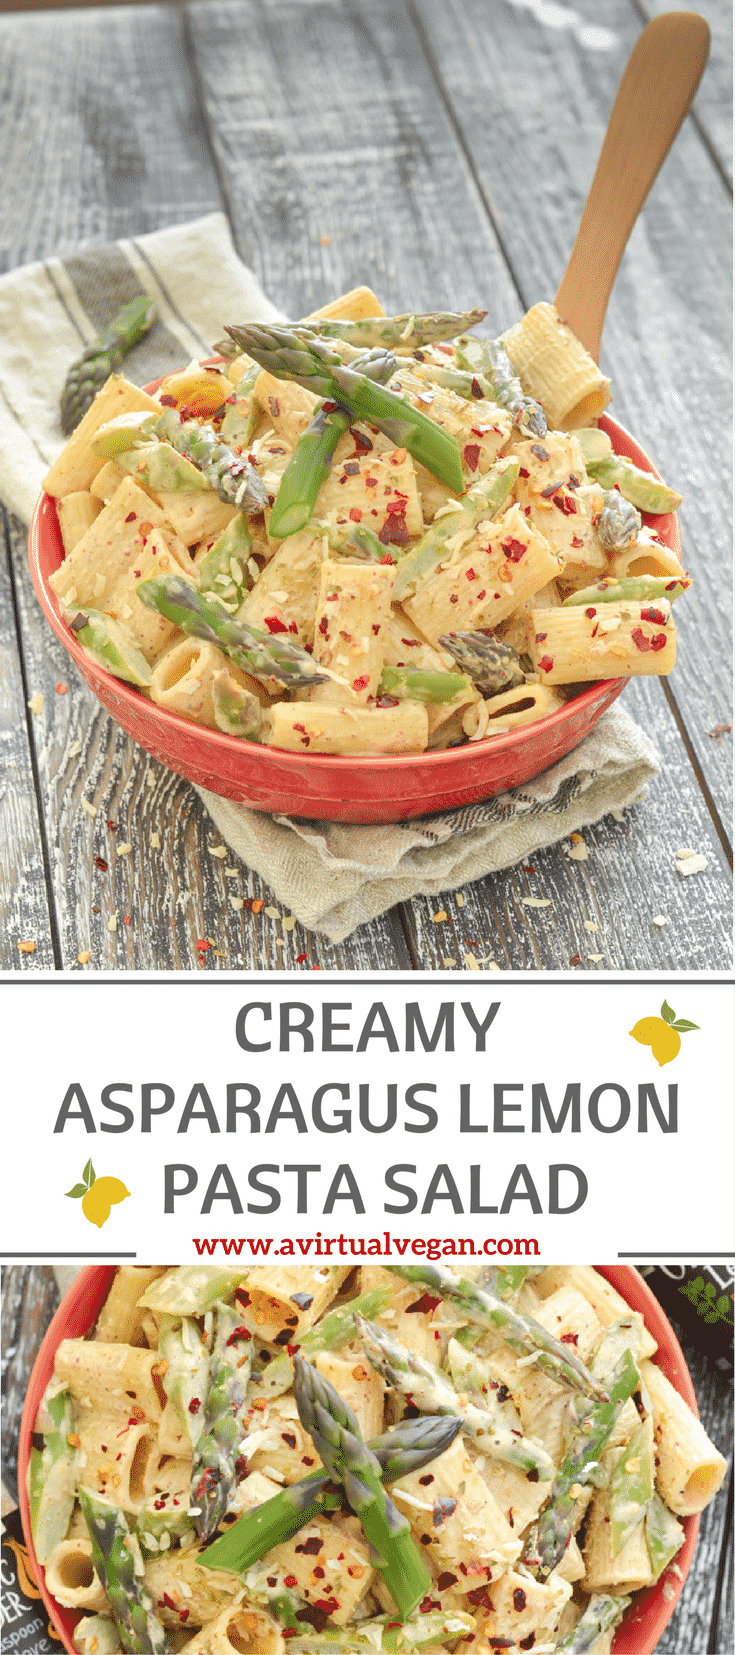 This Creamy Asparagus Lemon Pasta Salad is fresh & delicious, super easy to make, and perfect for quick mid week meals, make ahead lunches and gatherings!